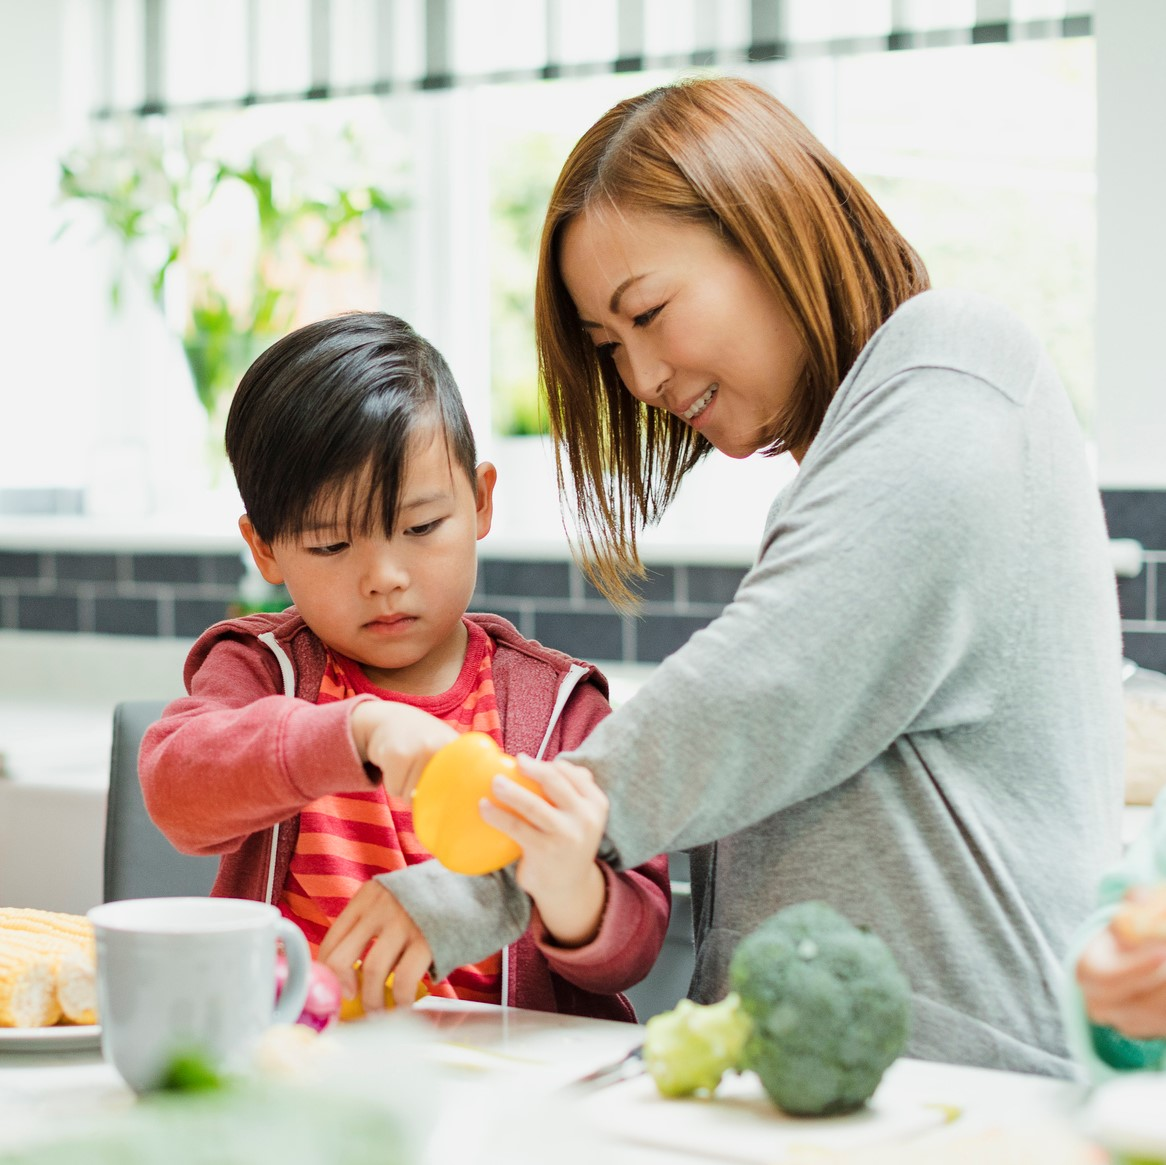 Family are preparing vegetables for dinner in the kitchen of their home. The mother is helping the little boy prepare a yellow bell pepper.